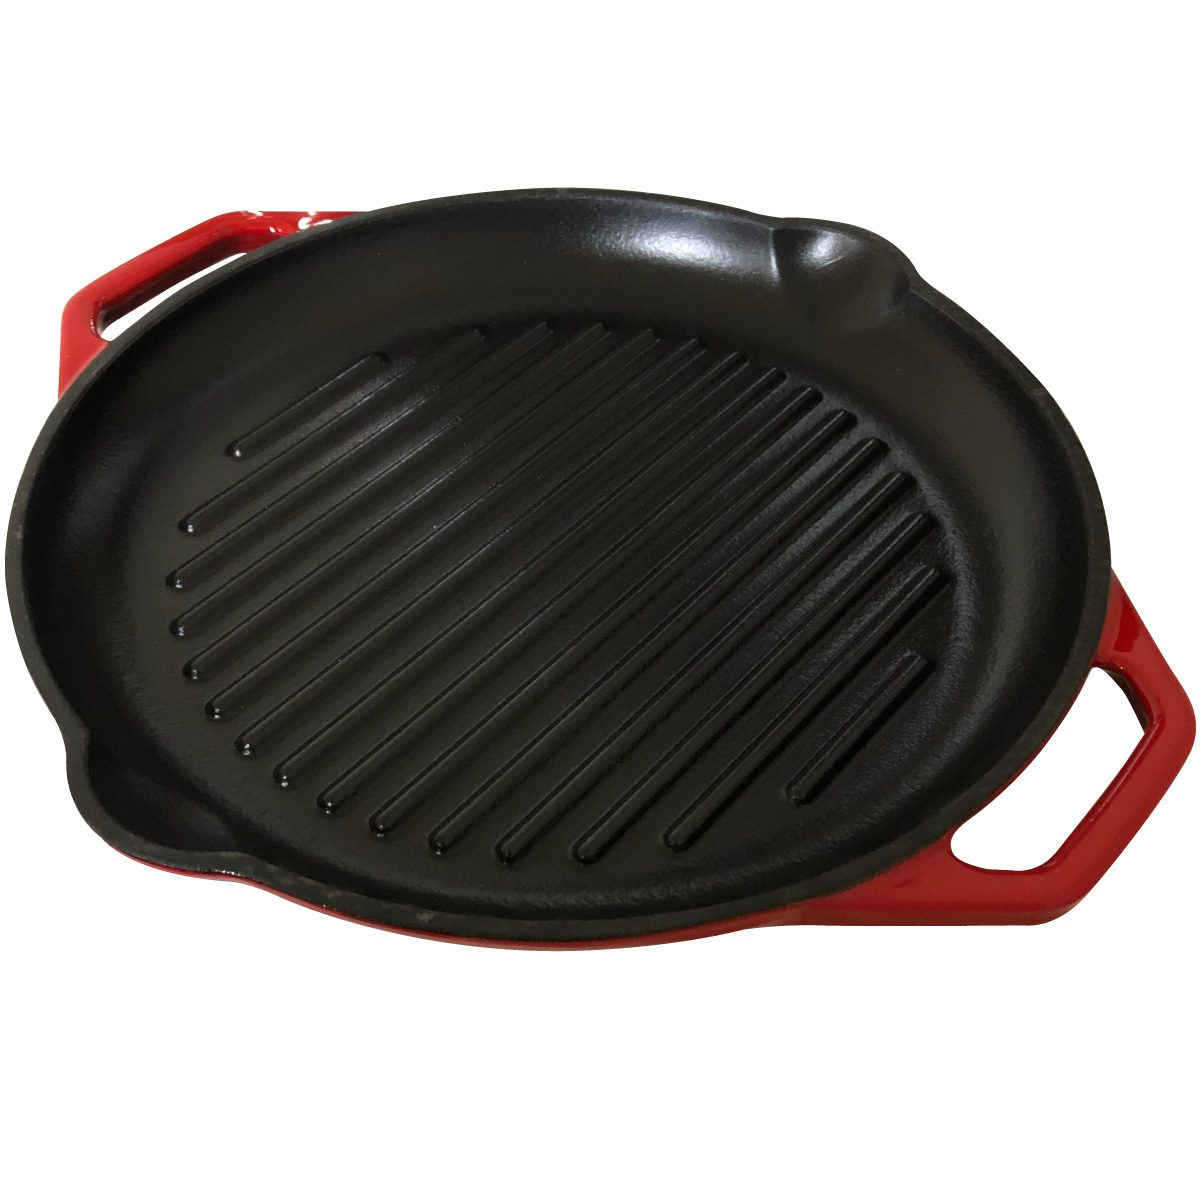 Ecoheat Griddle Plate - top / side view